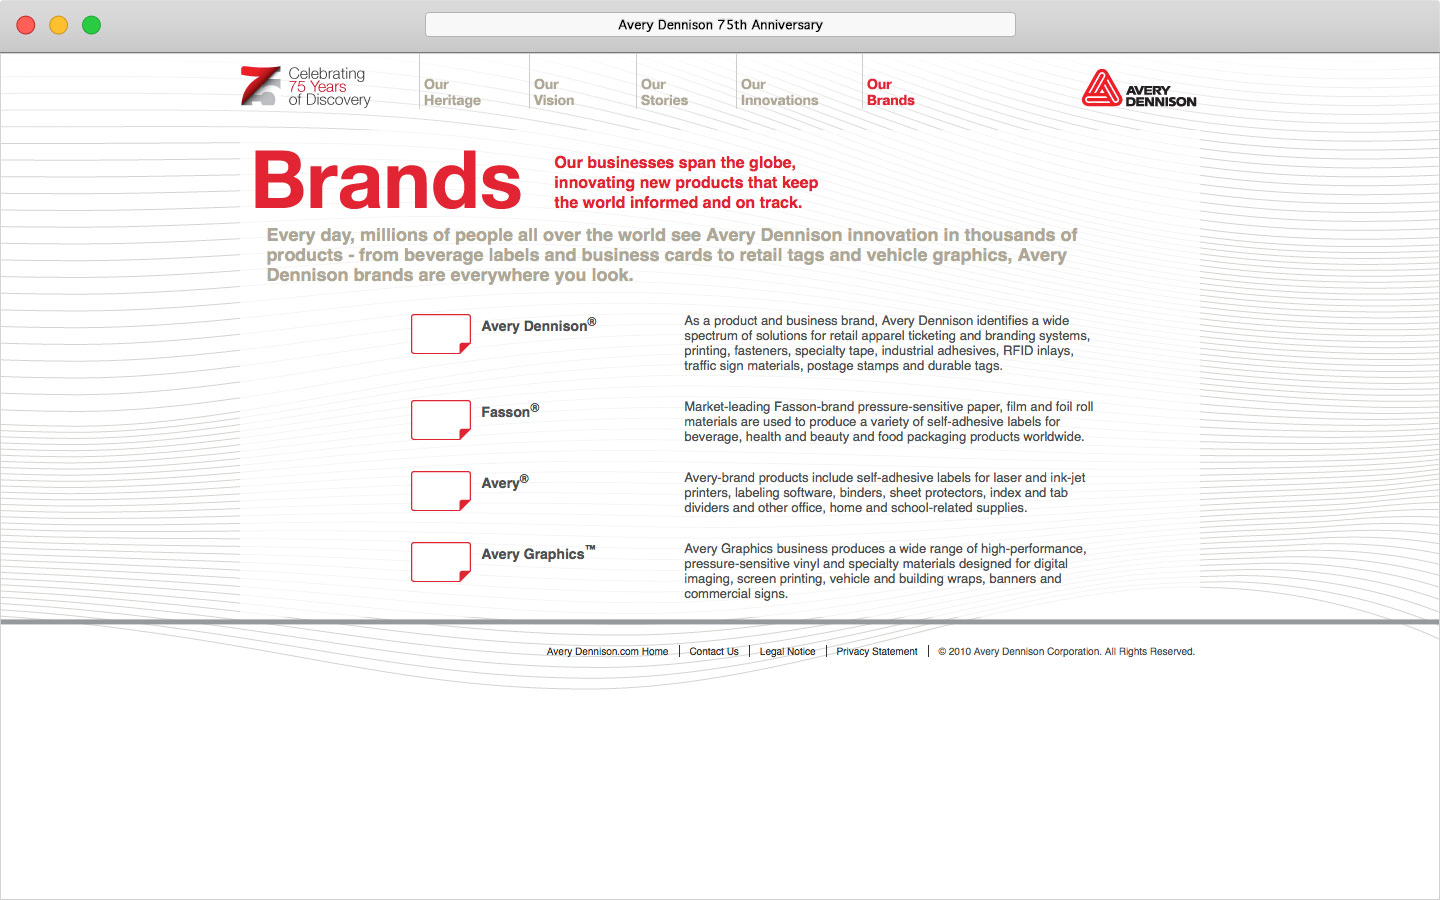 Avery Dennison 75th anniversary microsite Our Brands page